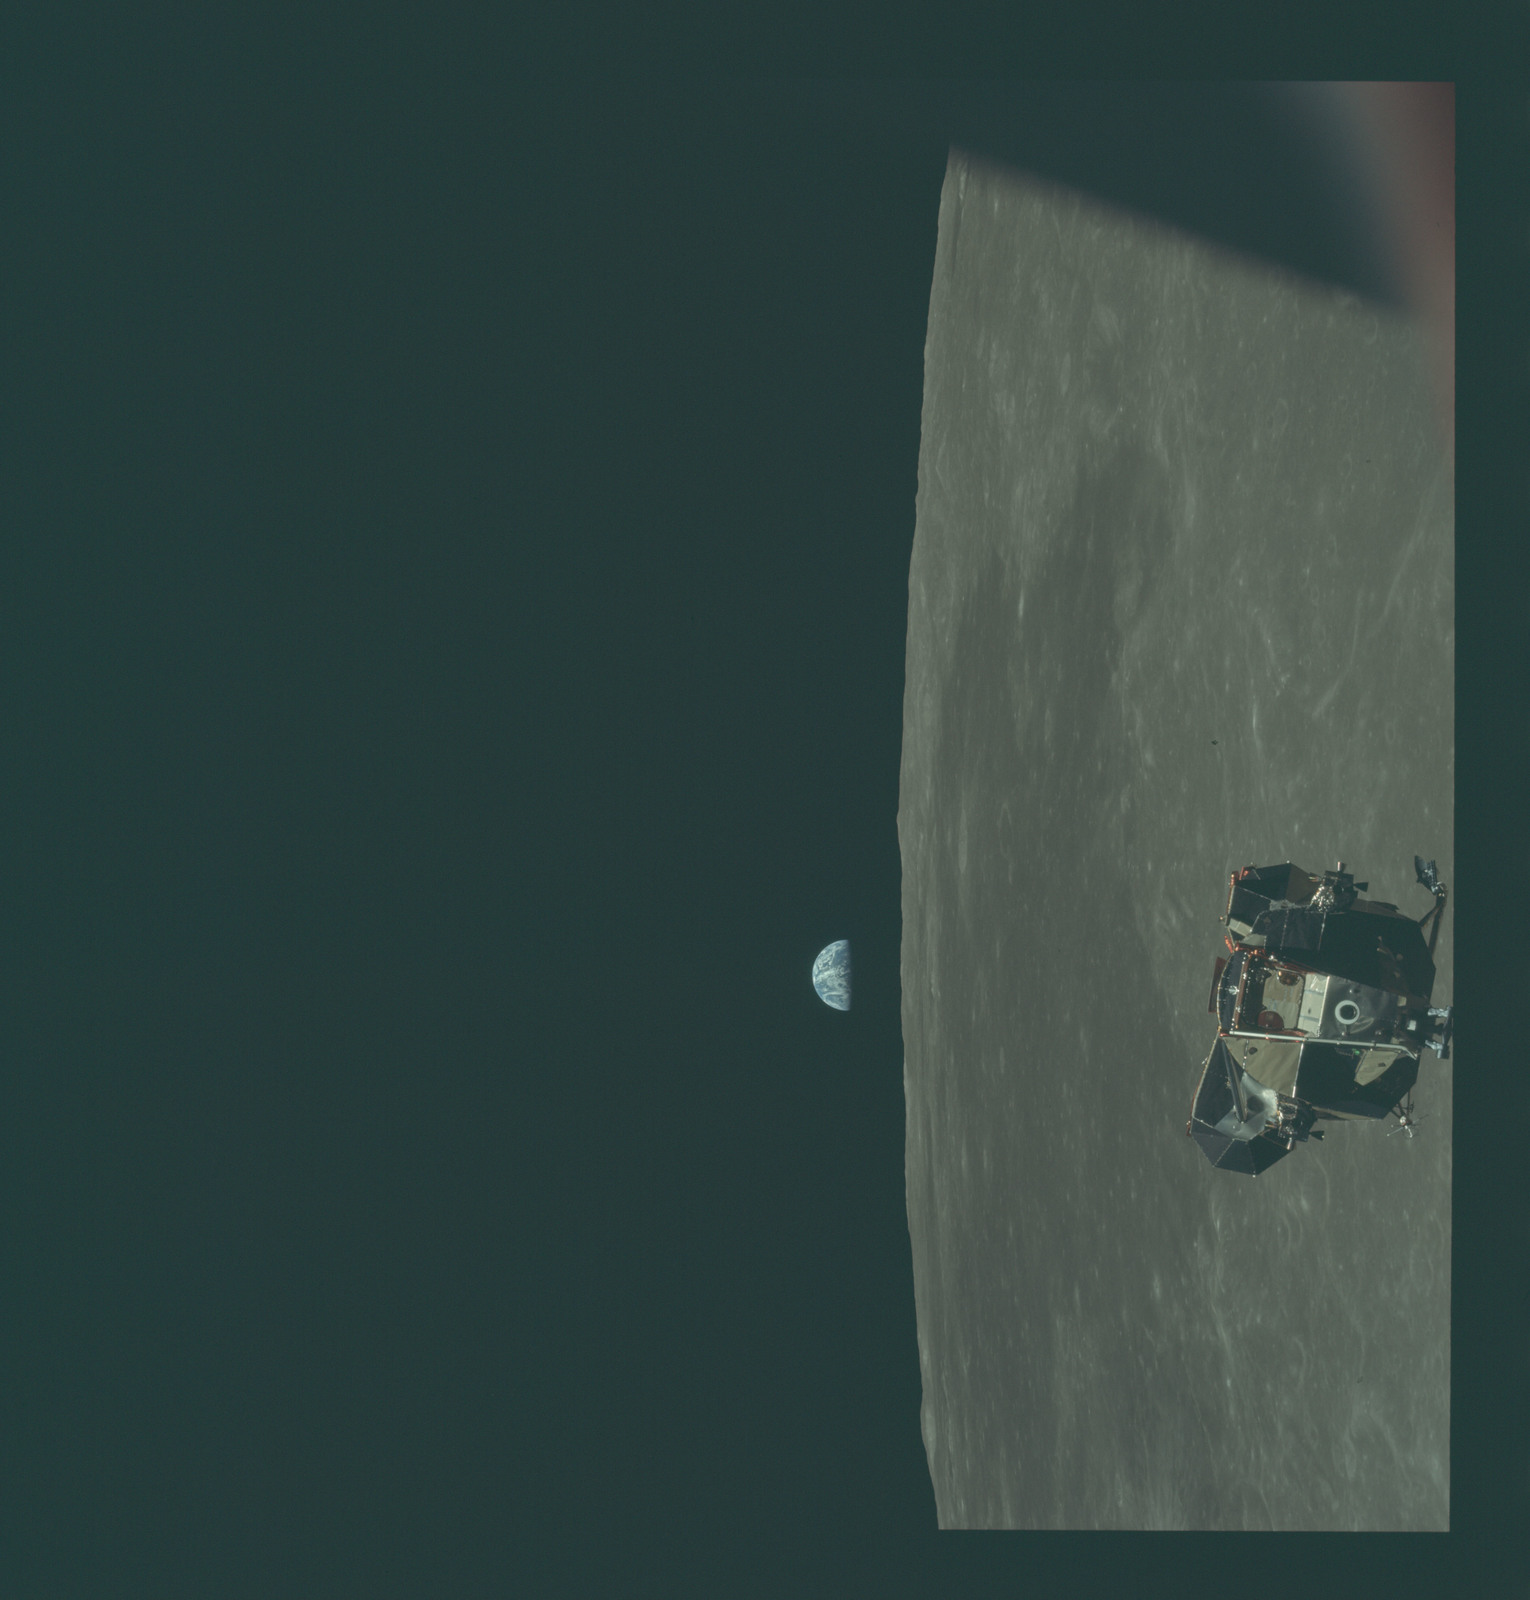 AS11-44-6639 - Apollo 11 - Apollo 11 Mission image - View of Moon limb and Lunar Module during ascent, Mare Smythii, Earth on horizon